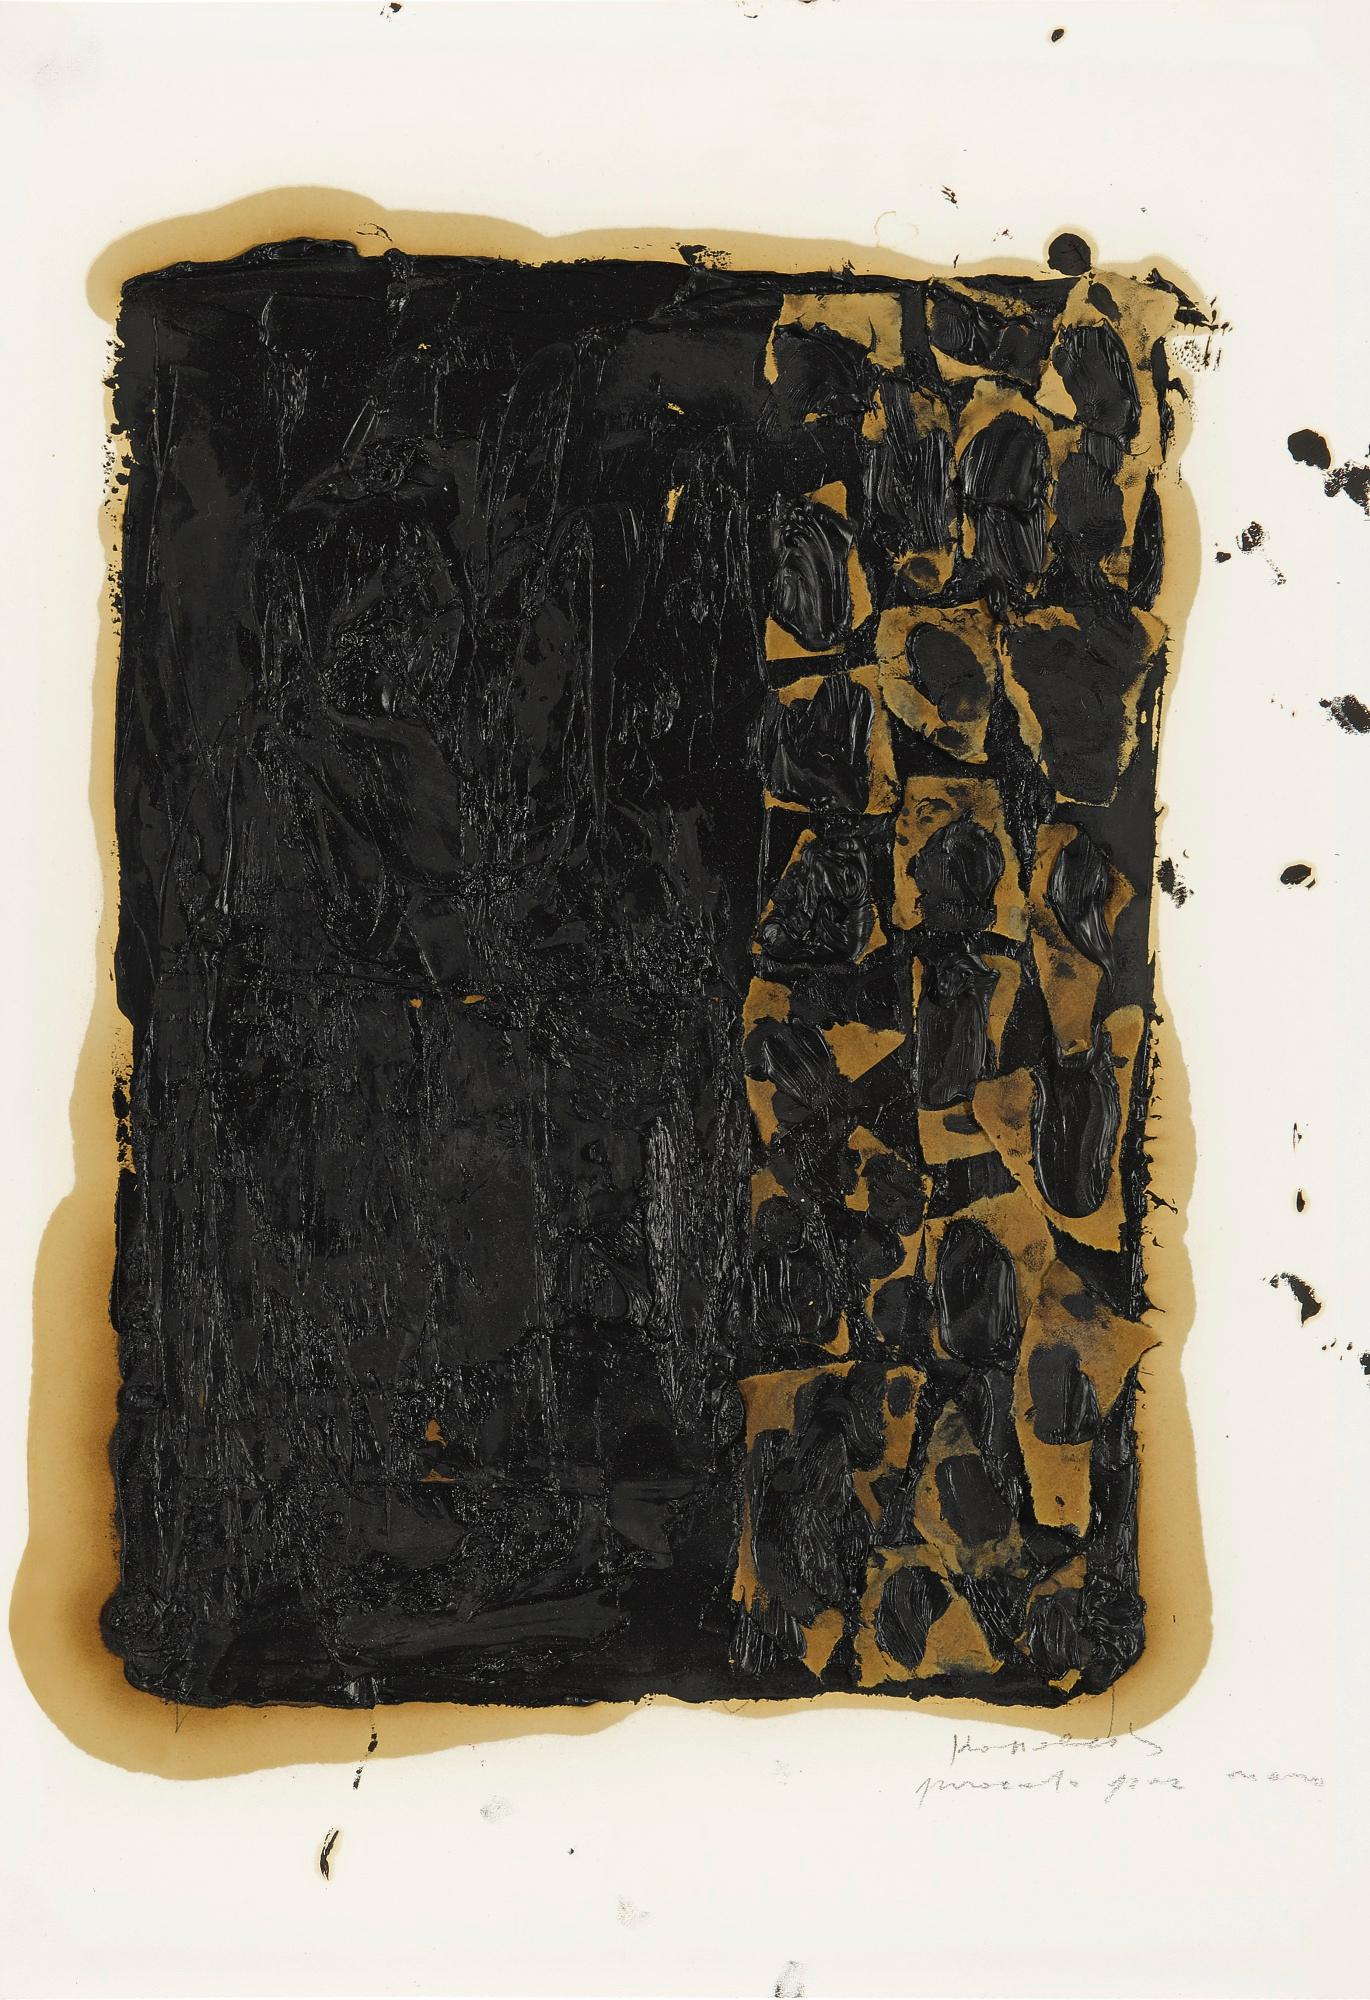 Arte Povera Yahoo Jannis Kounellis Biography Artwork Galleries Online Blouin Artinfo